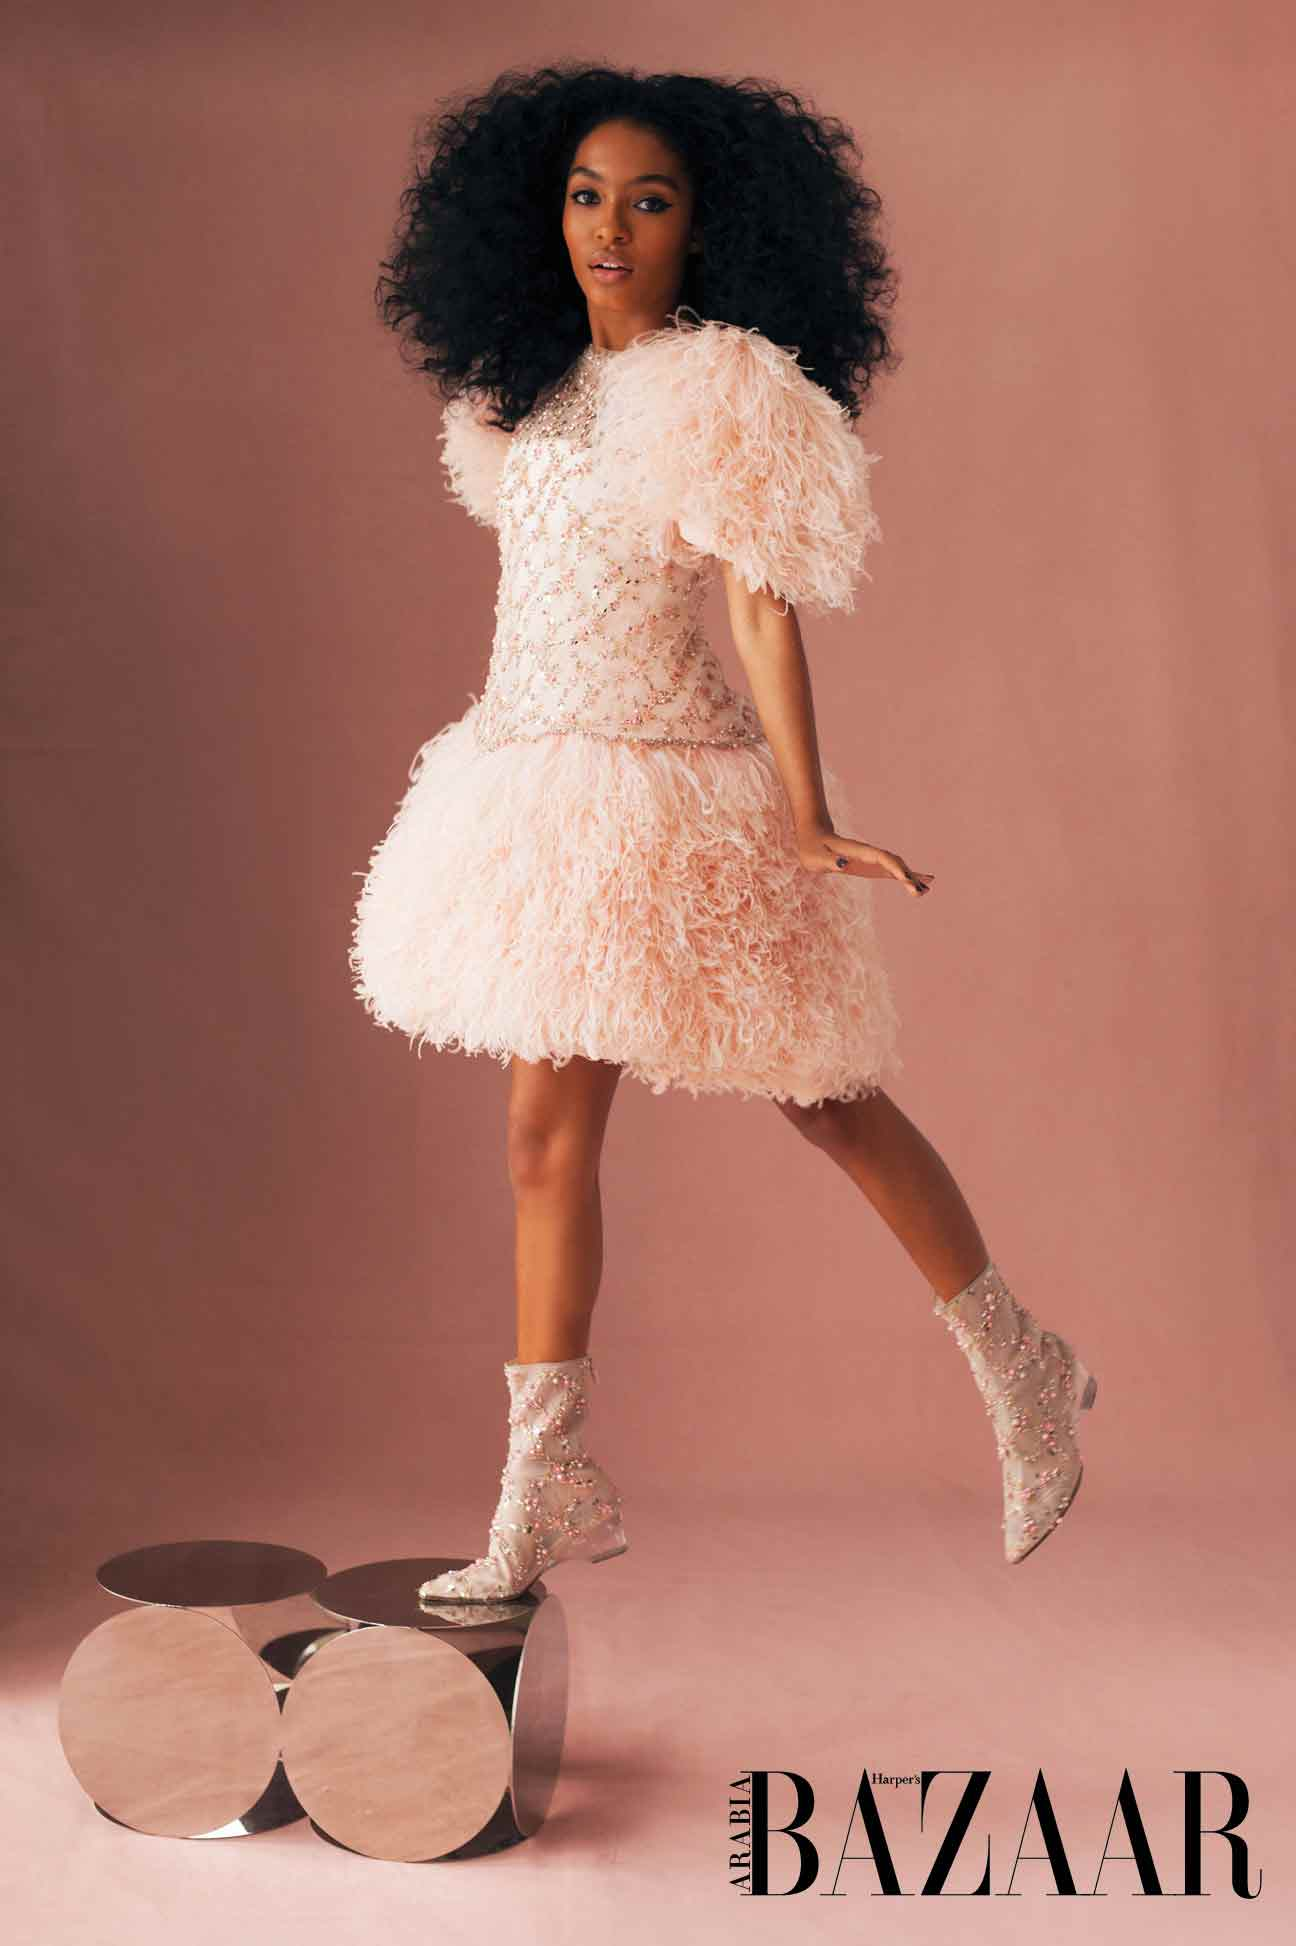 - Pink mini satin dress with embroidered tulle and feathers, and boots, both Chanel Haute Couture S/S18